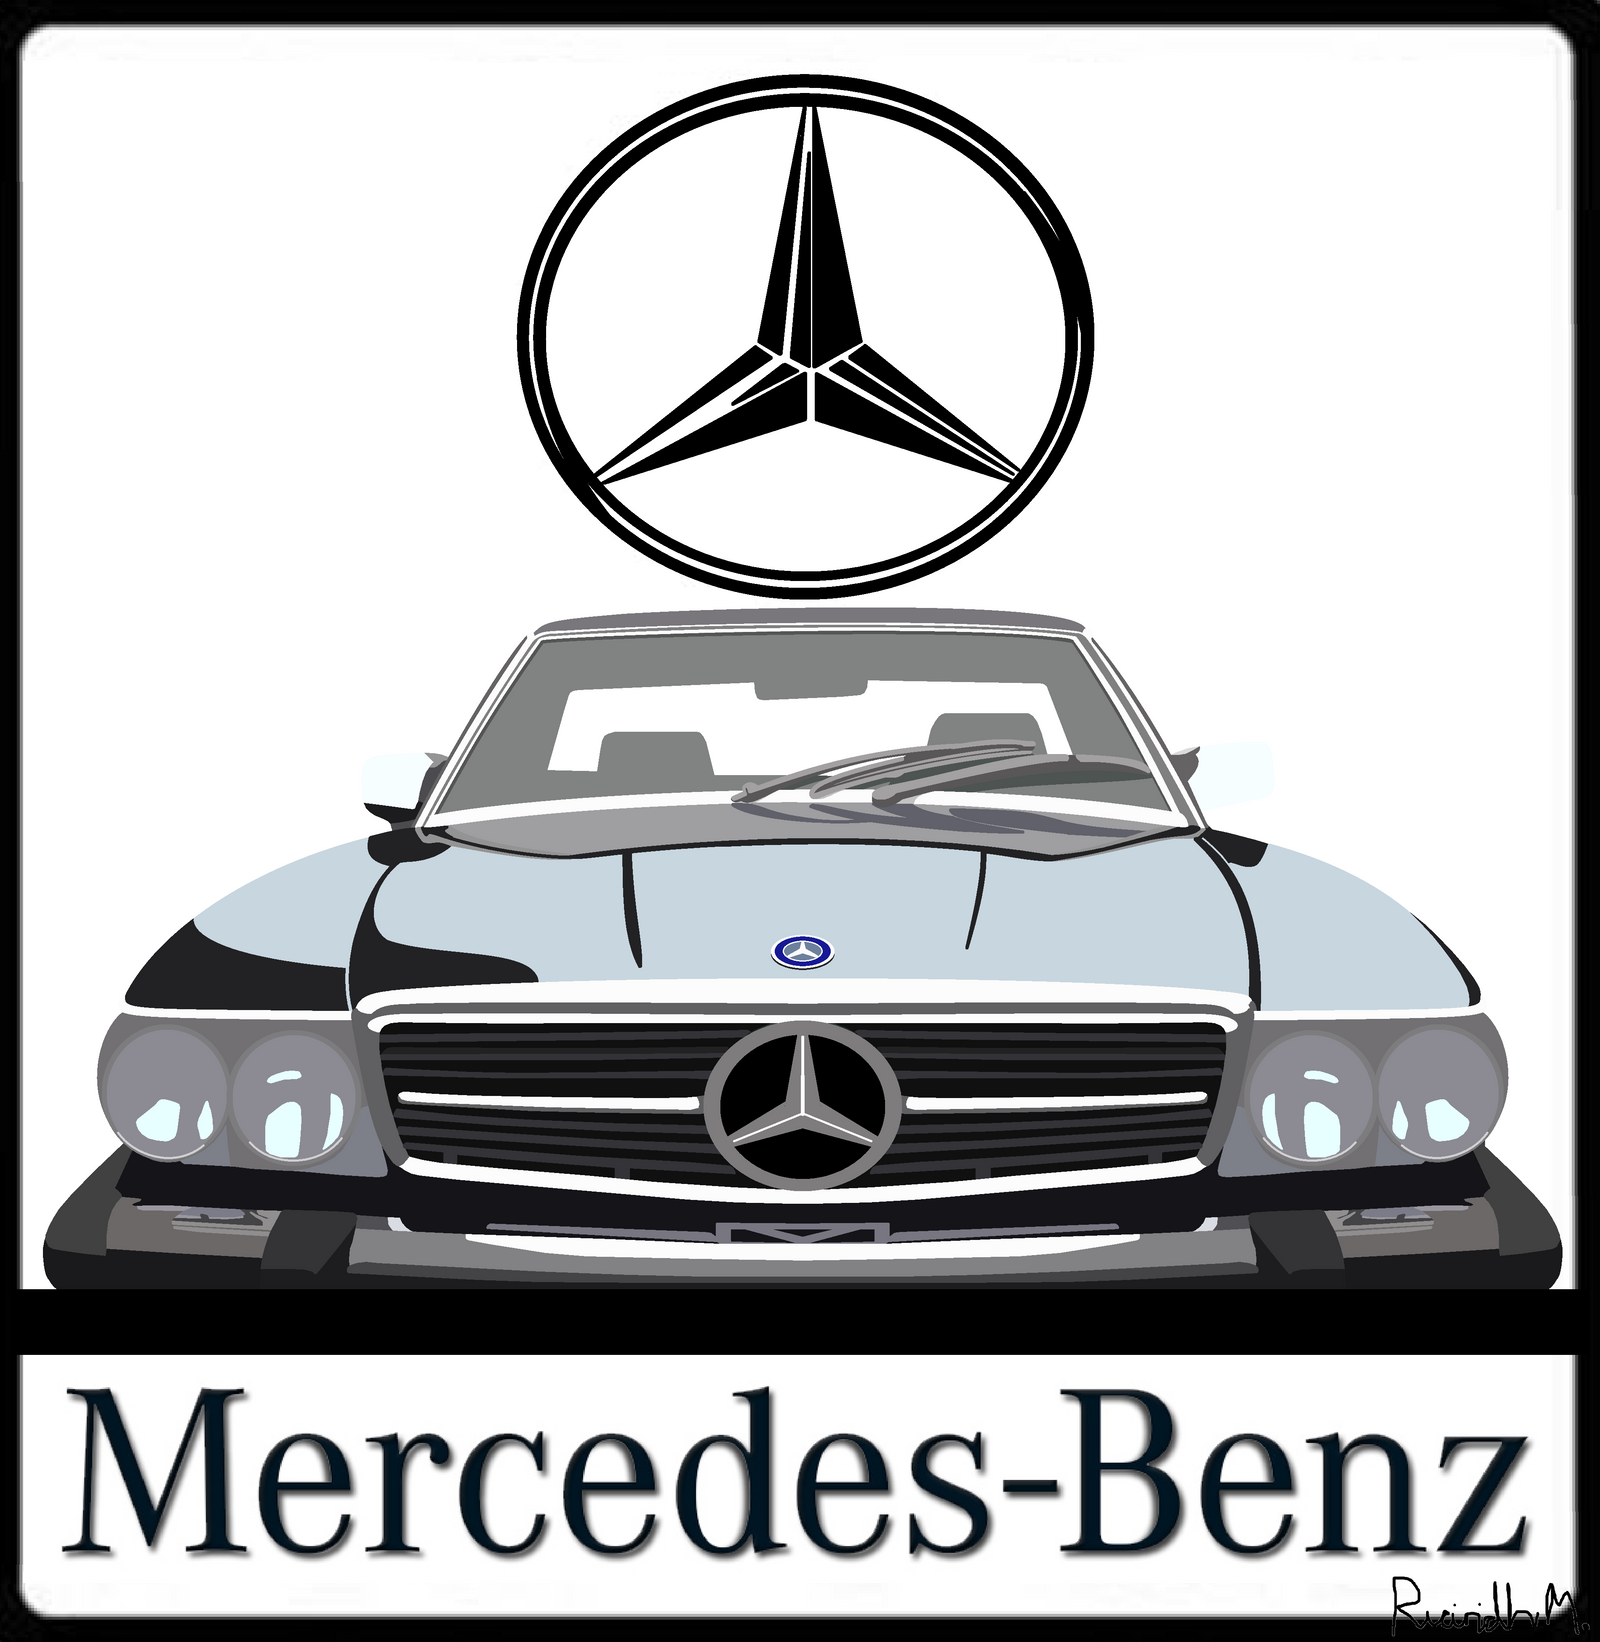 Mercedes benz 560sl shirt logo by the transport guild on for Mercedes benz shirts